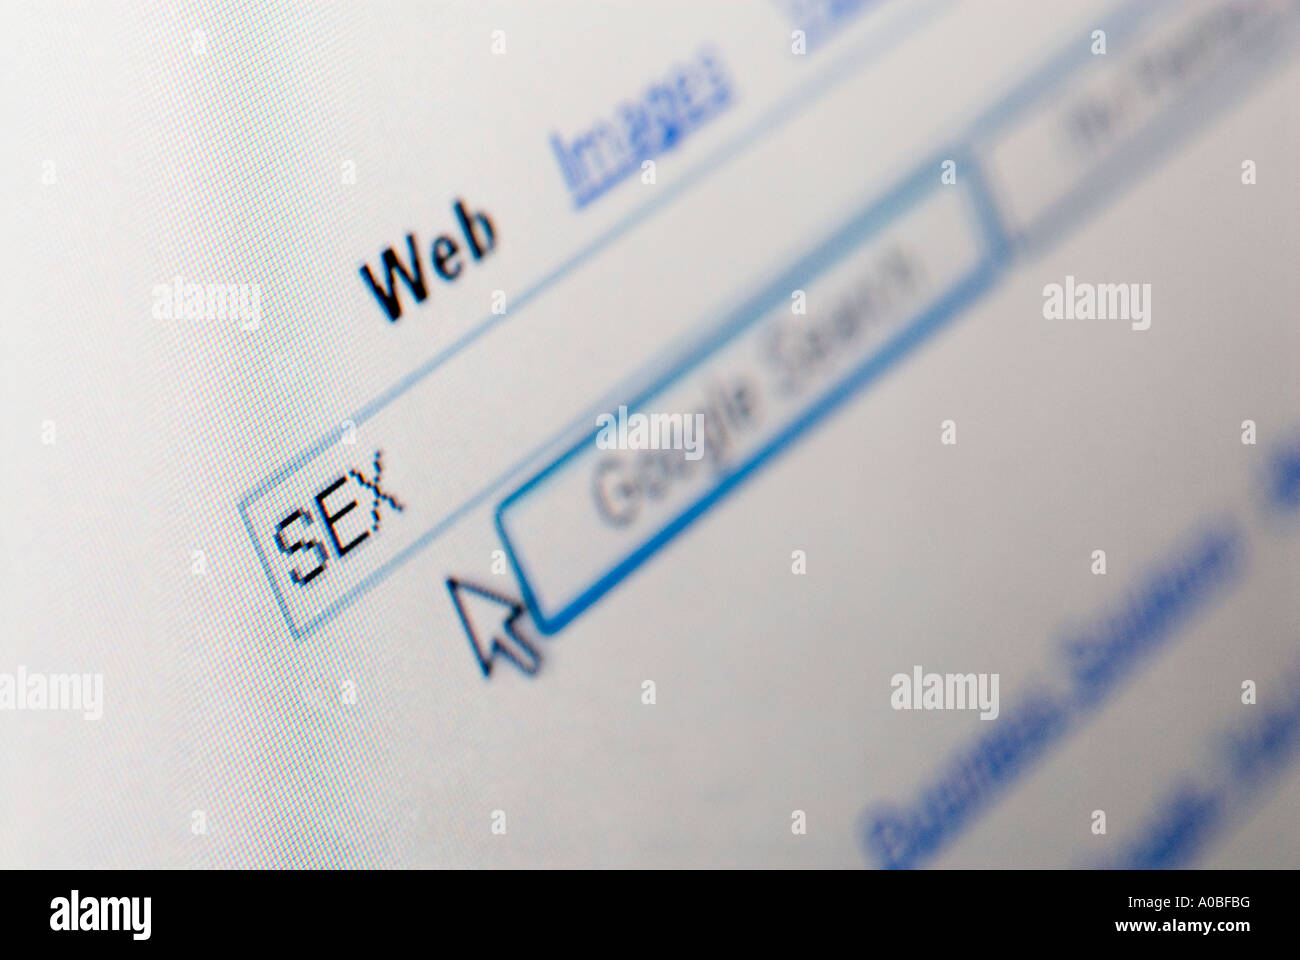 Something Free sex search engines brilliant